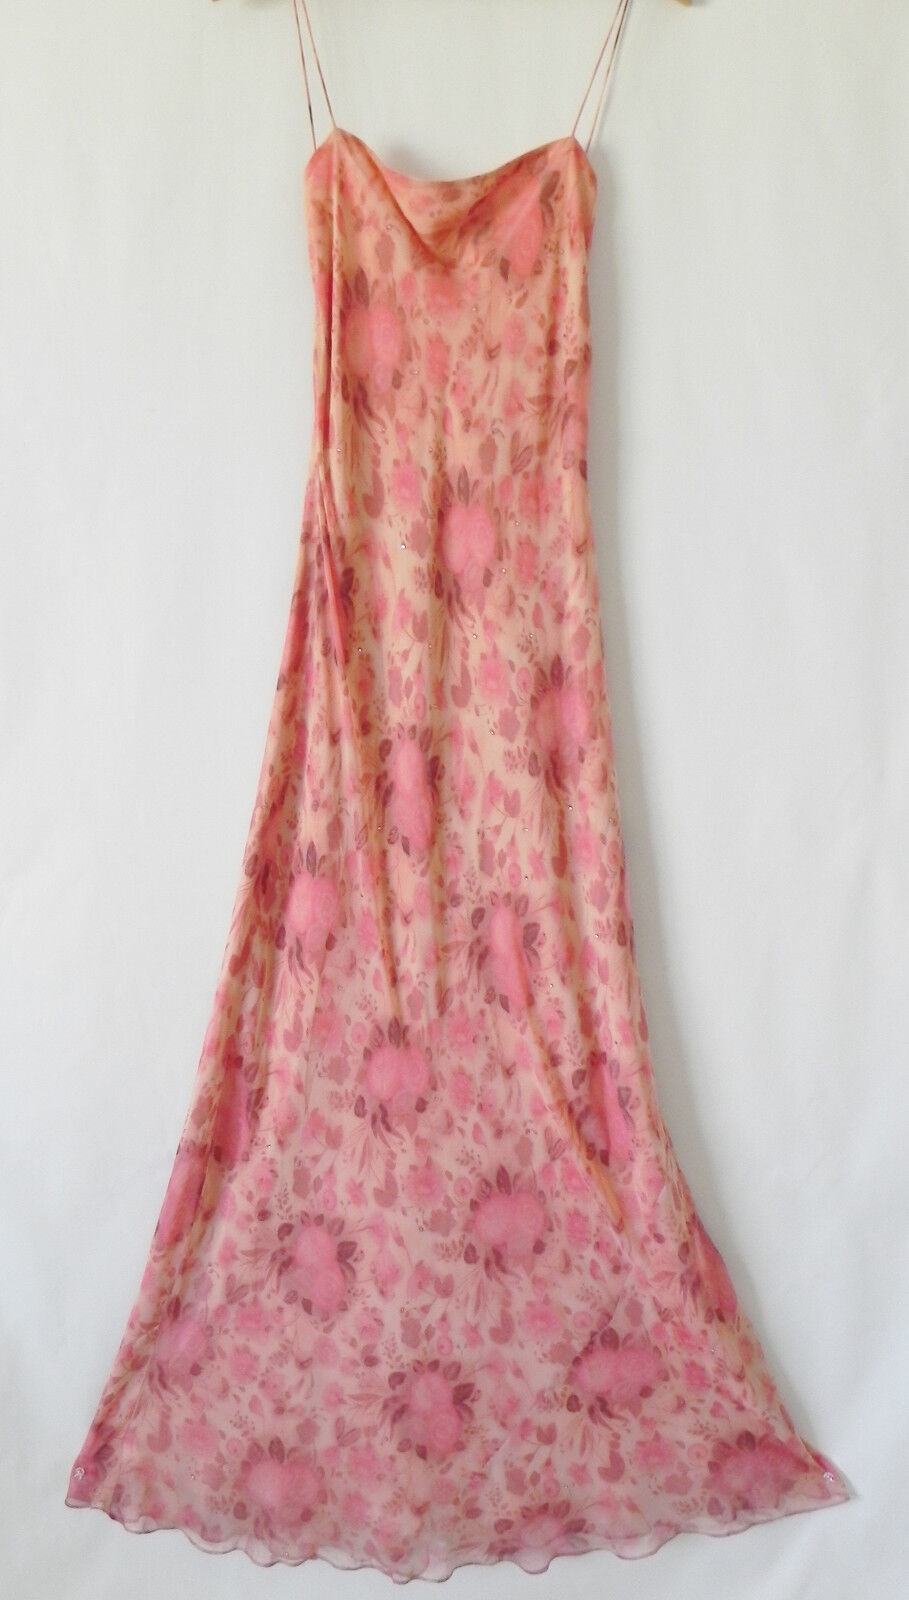 Laundry by by by shelli segal evening dress 100% silk maxi ruffle  size 12 09700a